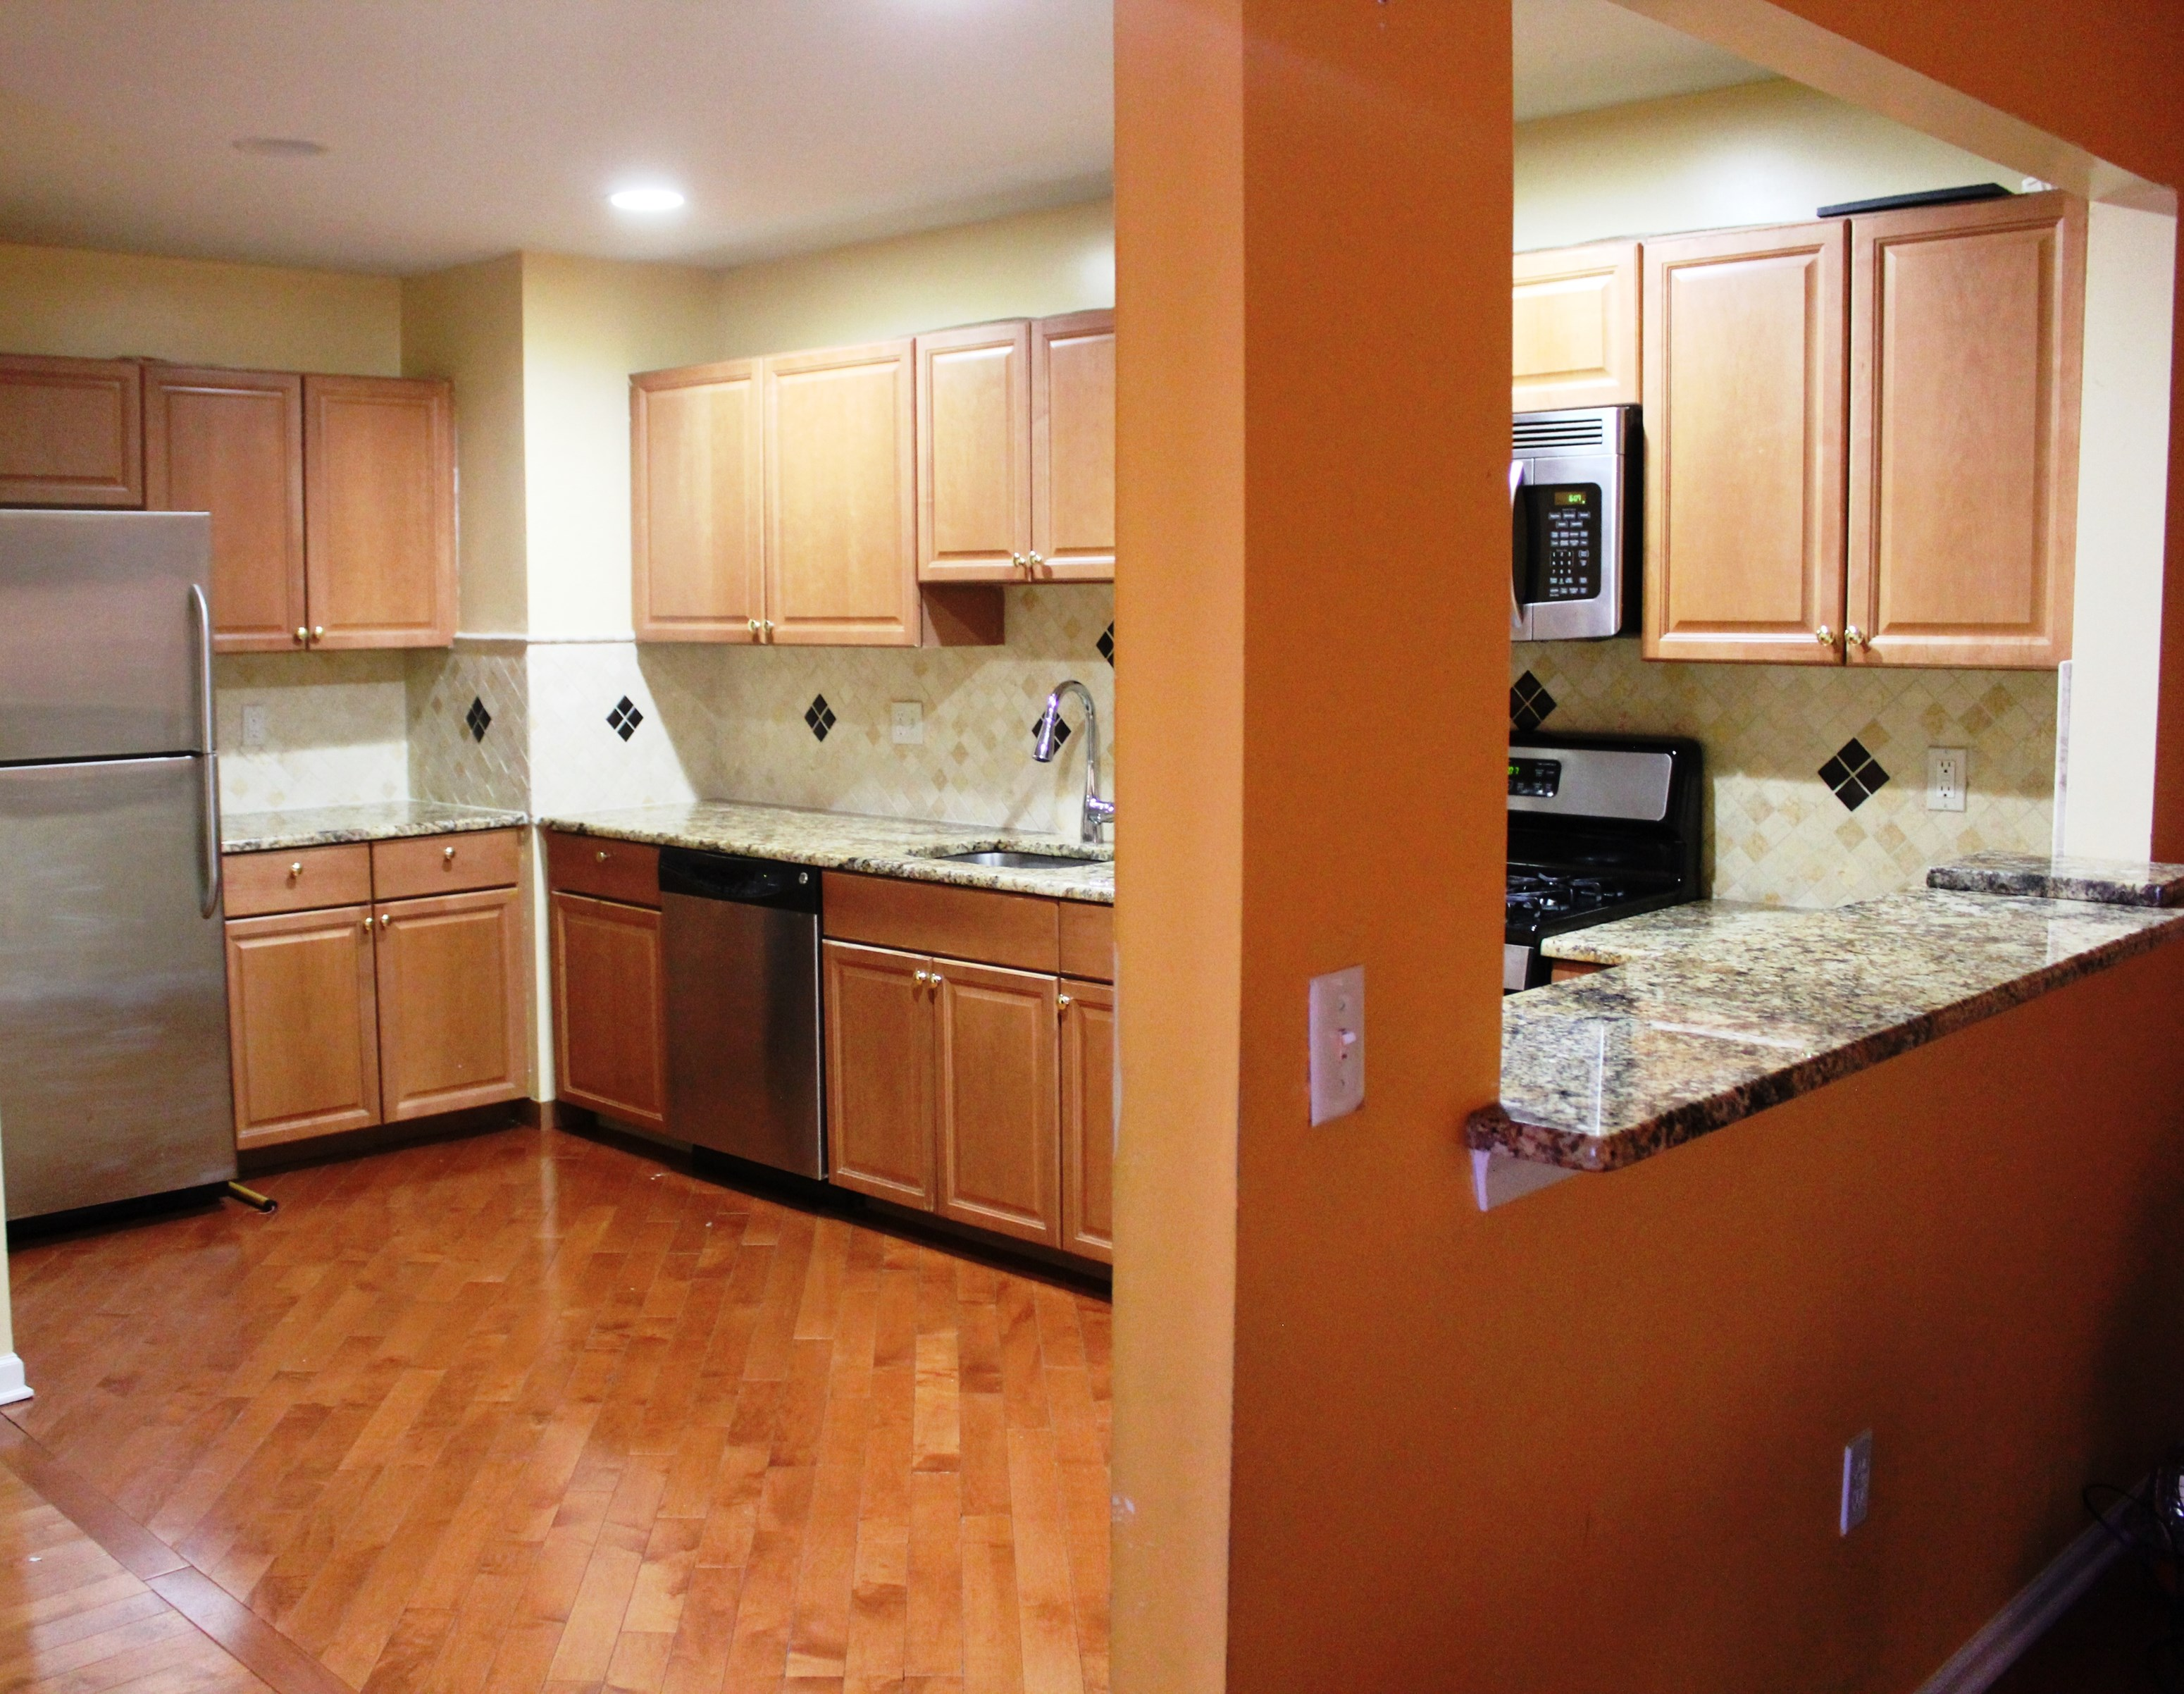 Offered Home To Rent In Piscataway Nj Rent A Houses Apartments Flats Commercial Space